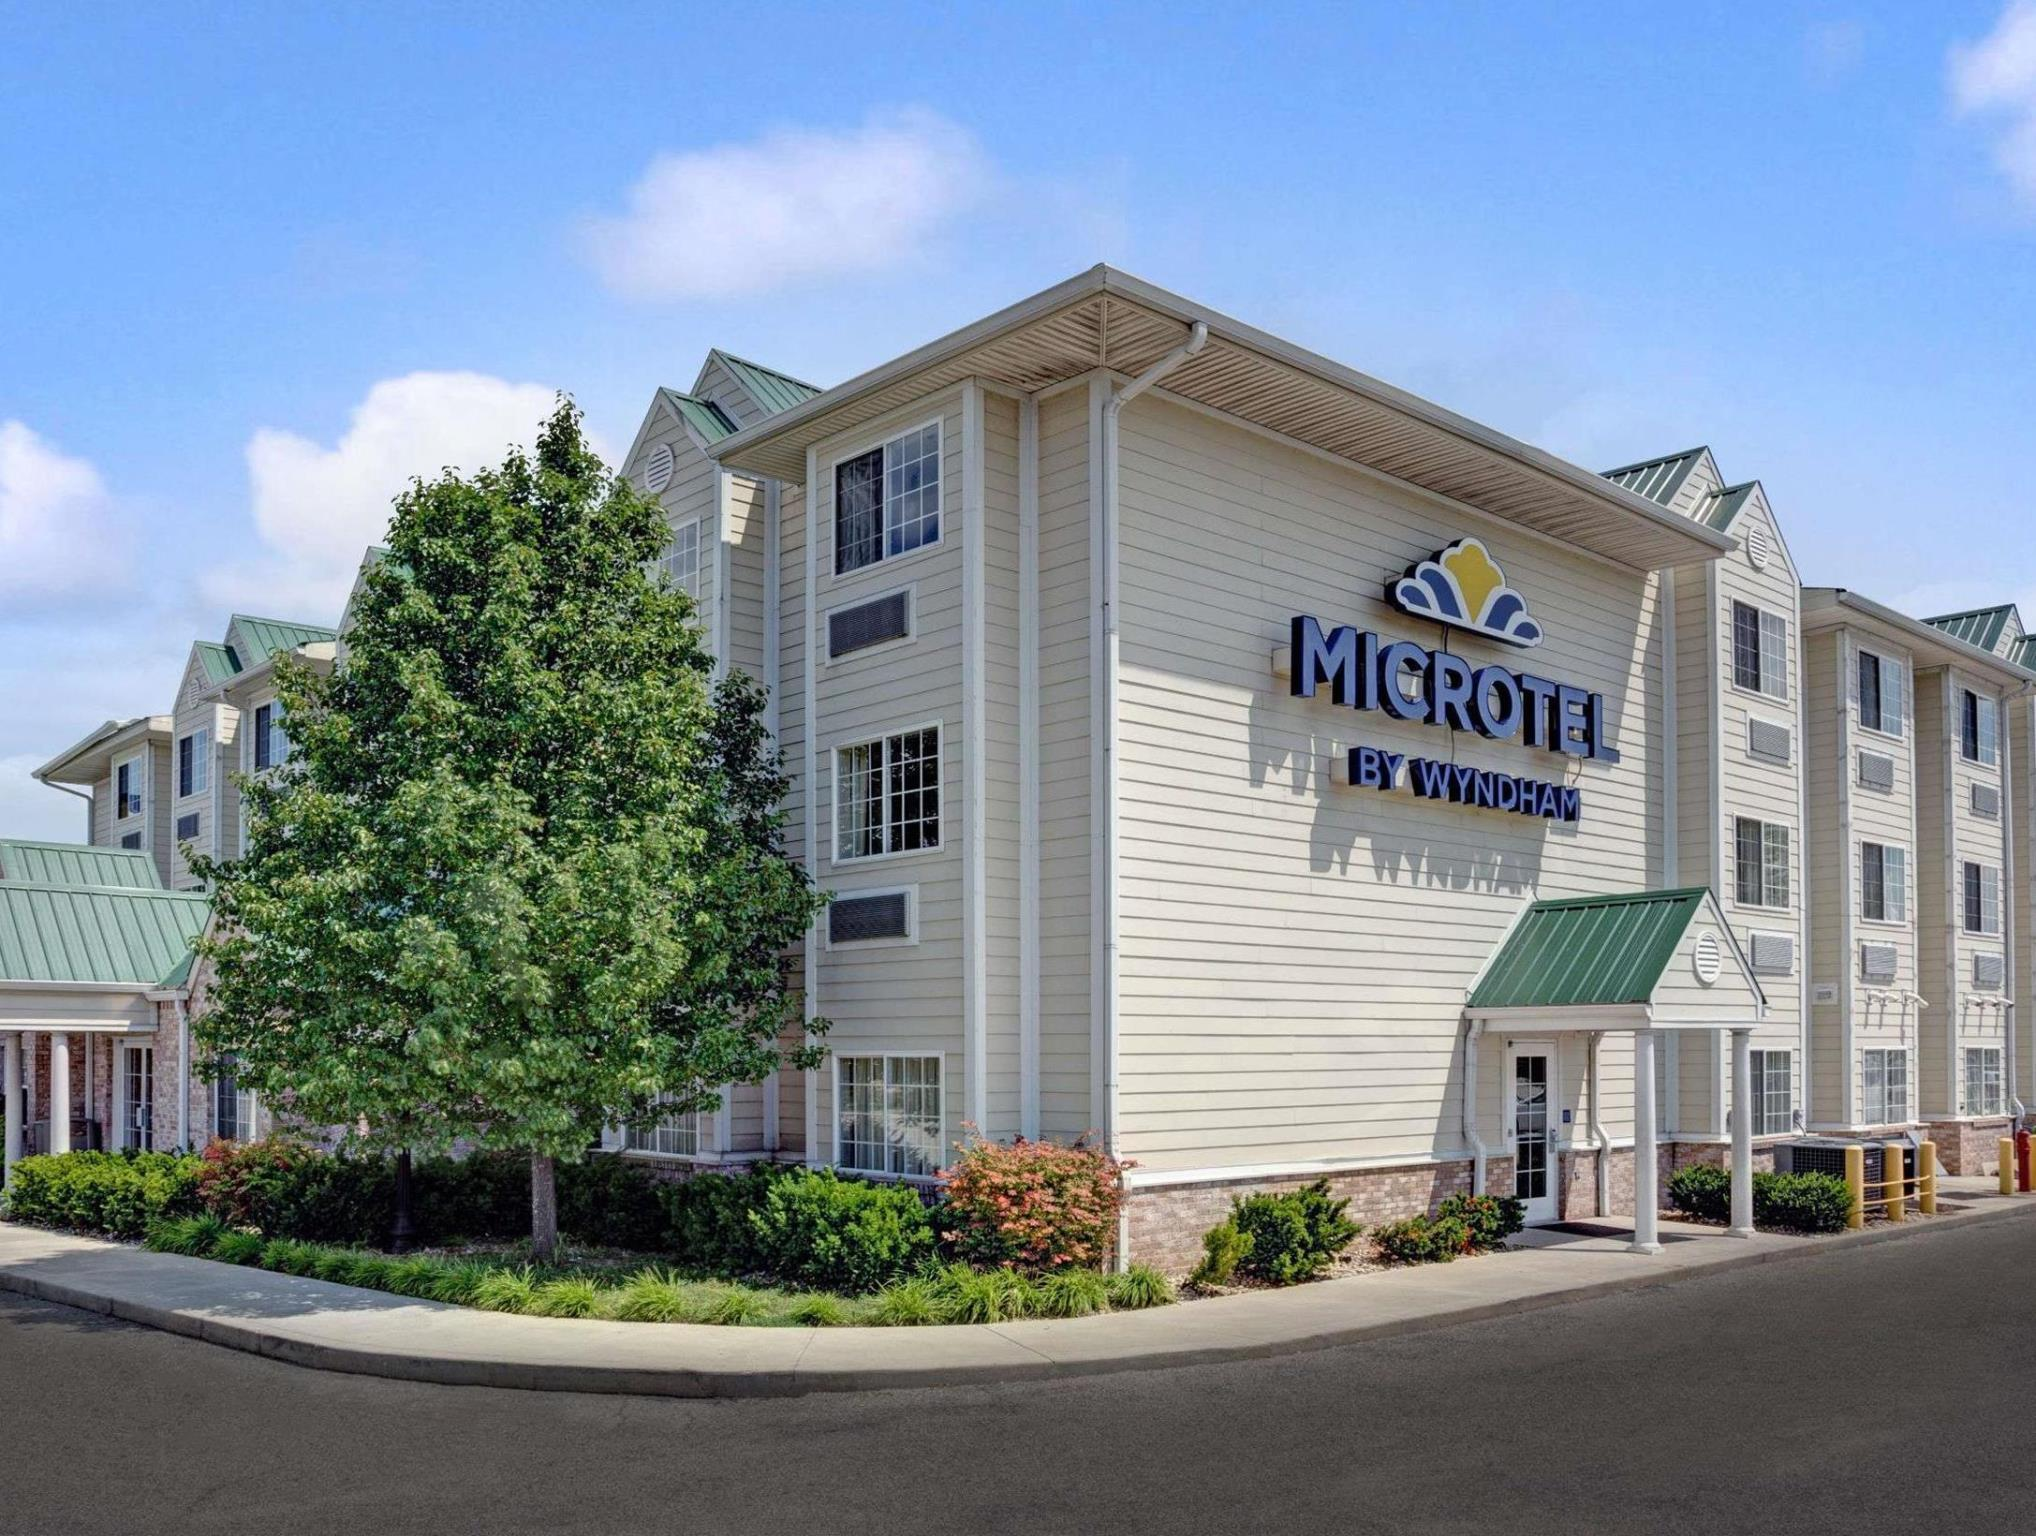 Microtel Inn And Suites By Wyndham Indianapolis Airport